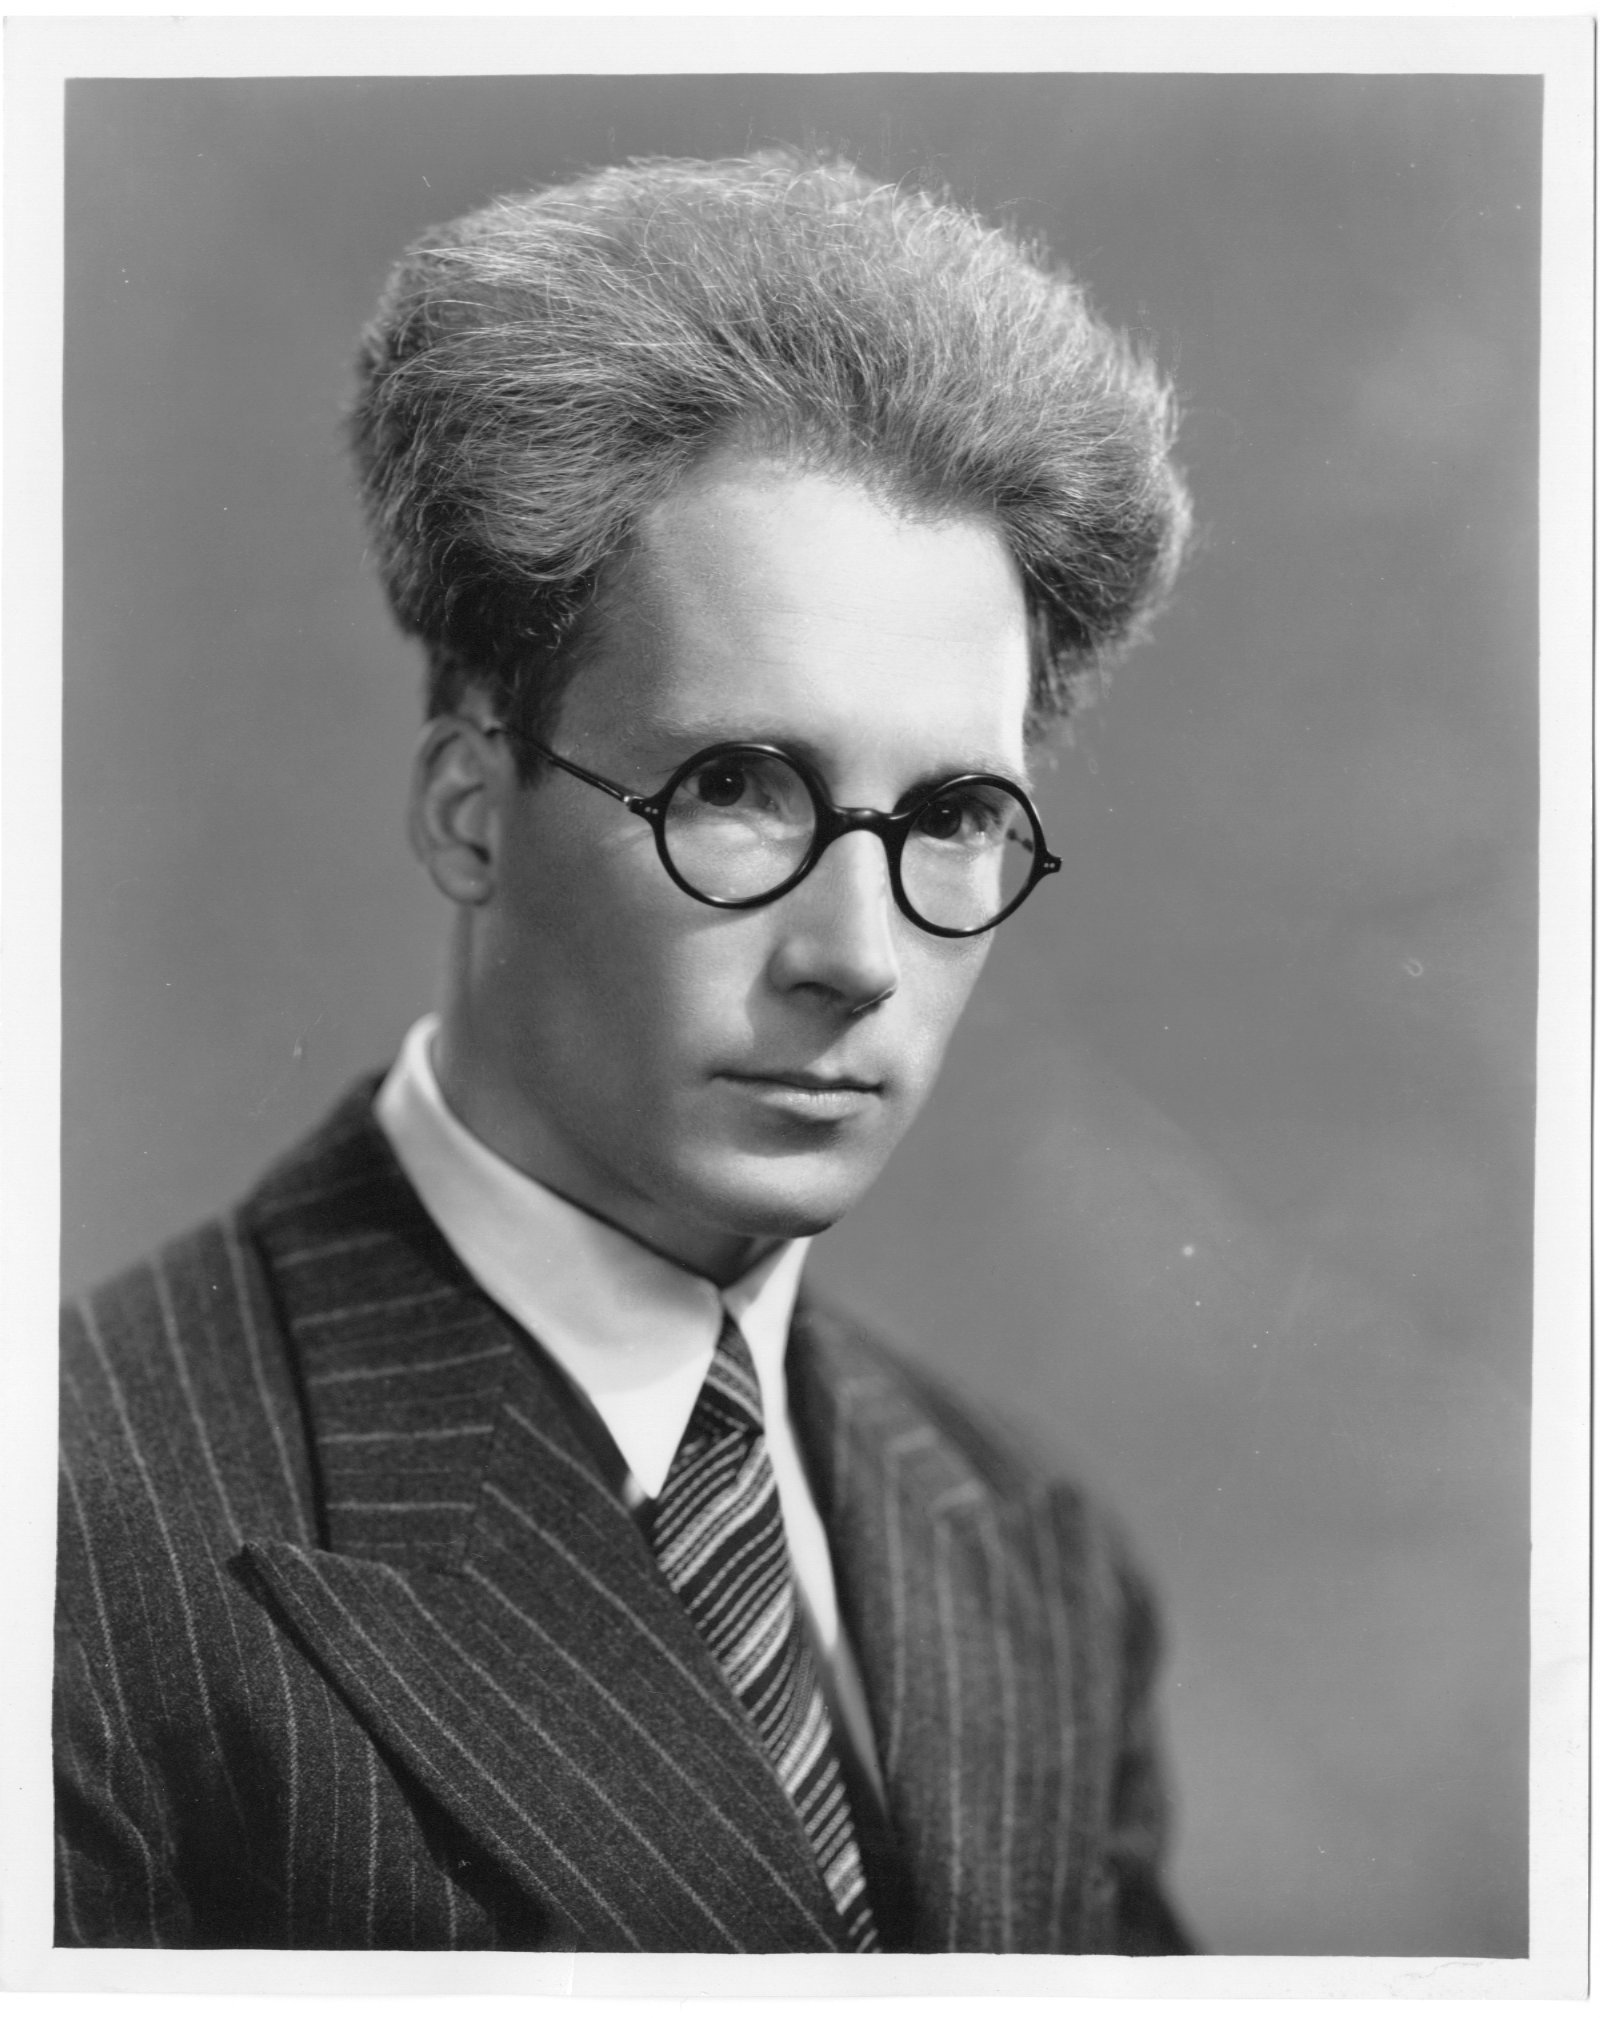 black and white portrait photograph of a man (Sigurd Rascher) with bushy hair wearing glasses and a suit and tie.